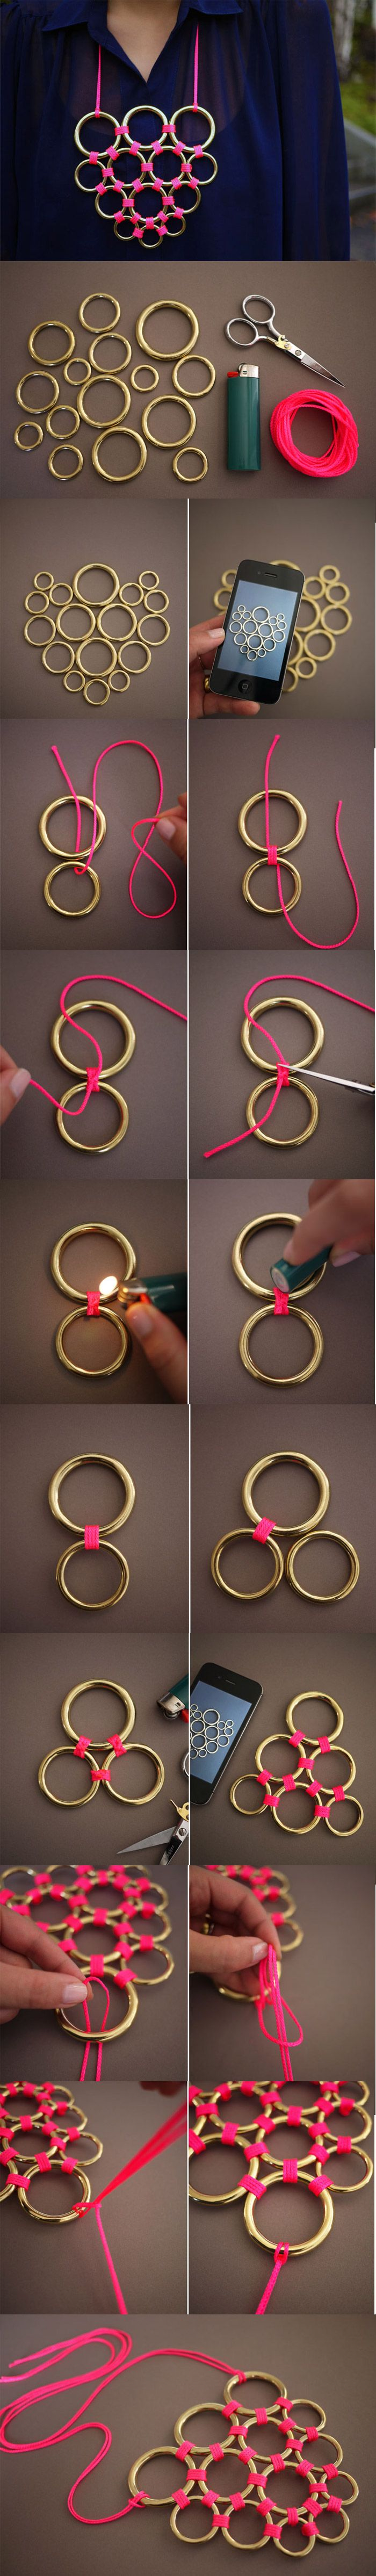 I would make this in to something other than a necklace.. continue the lattice of the rings into a screen of some kind